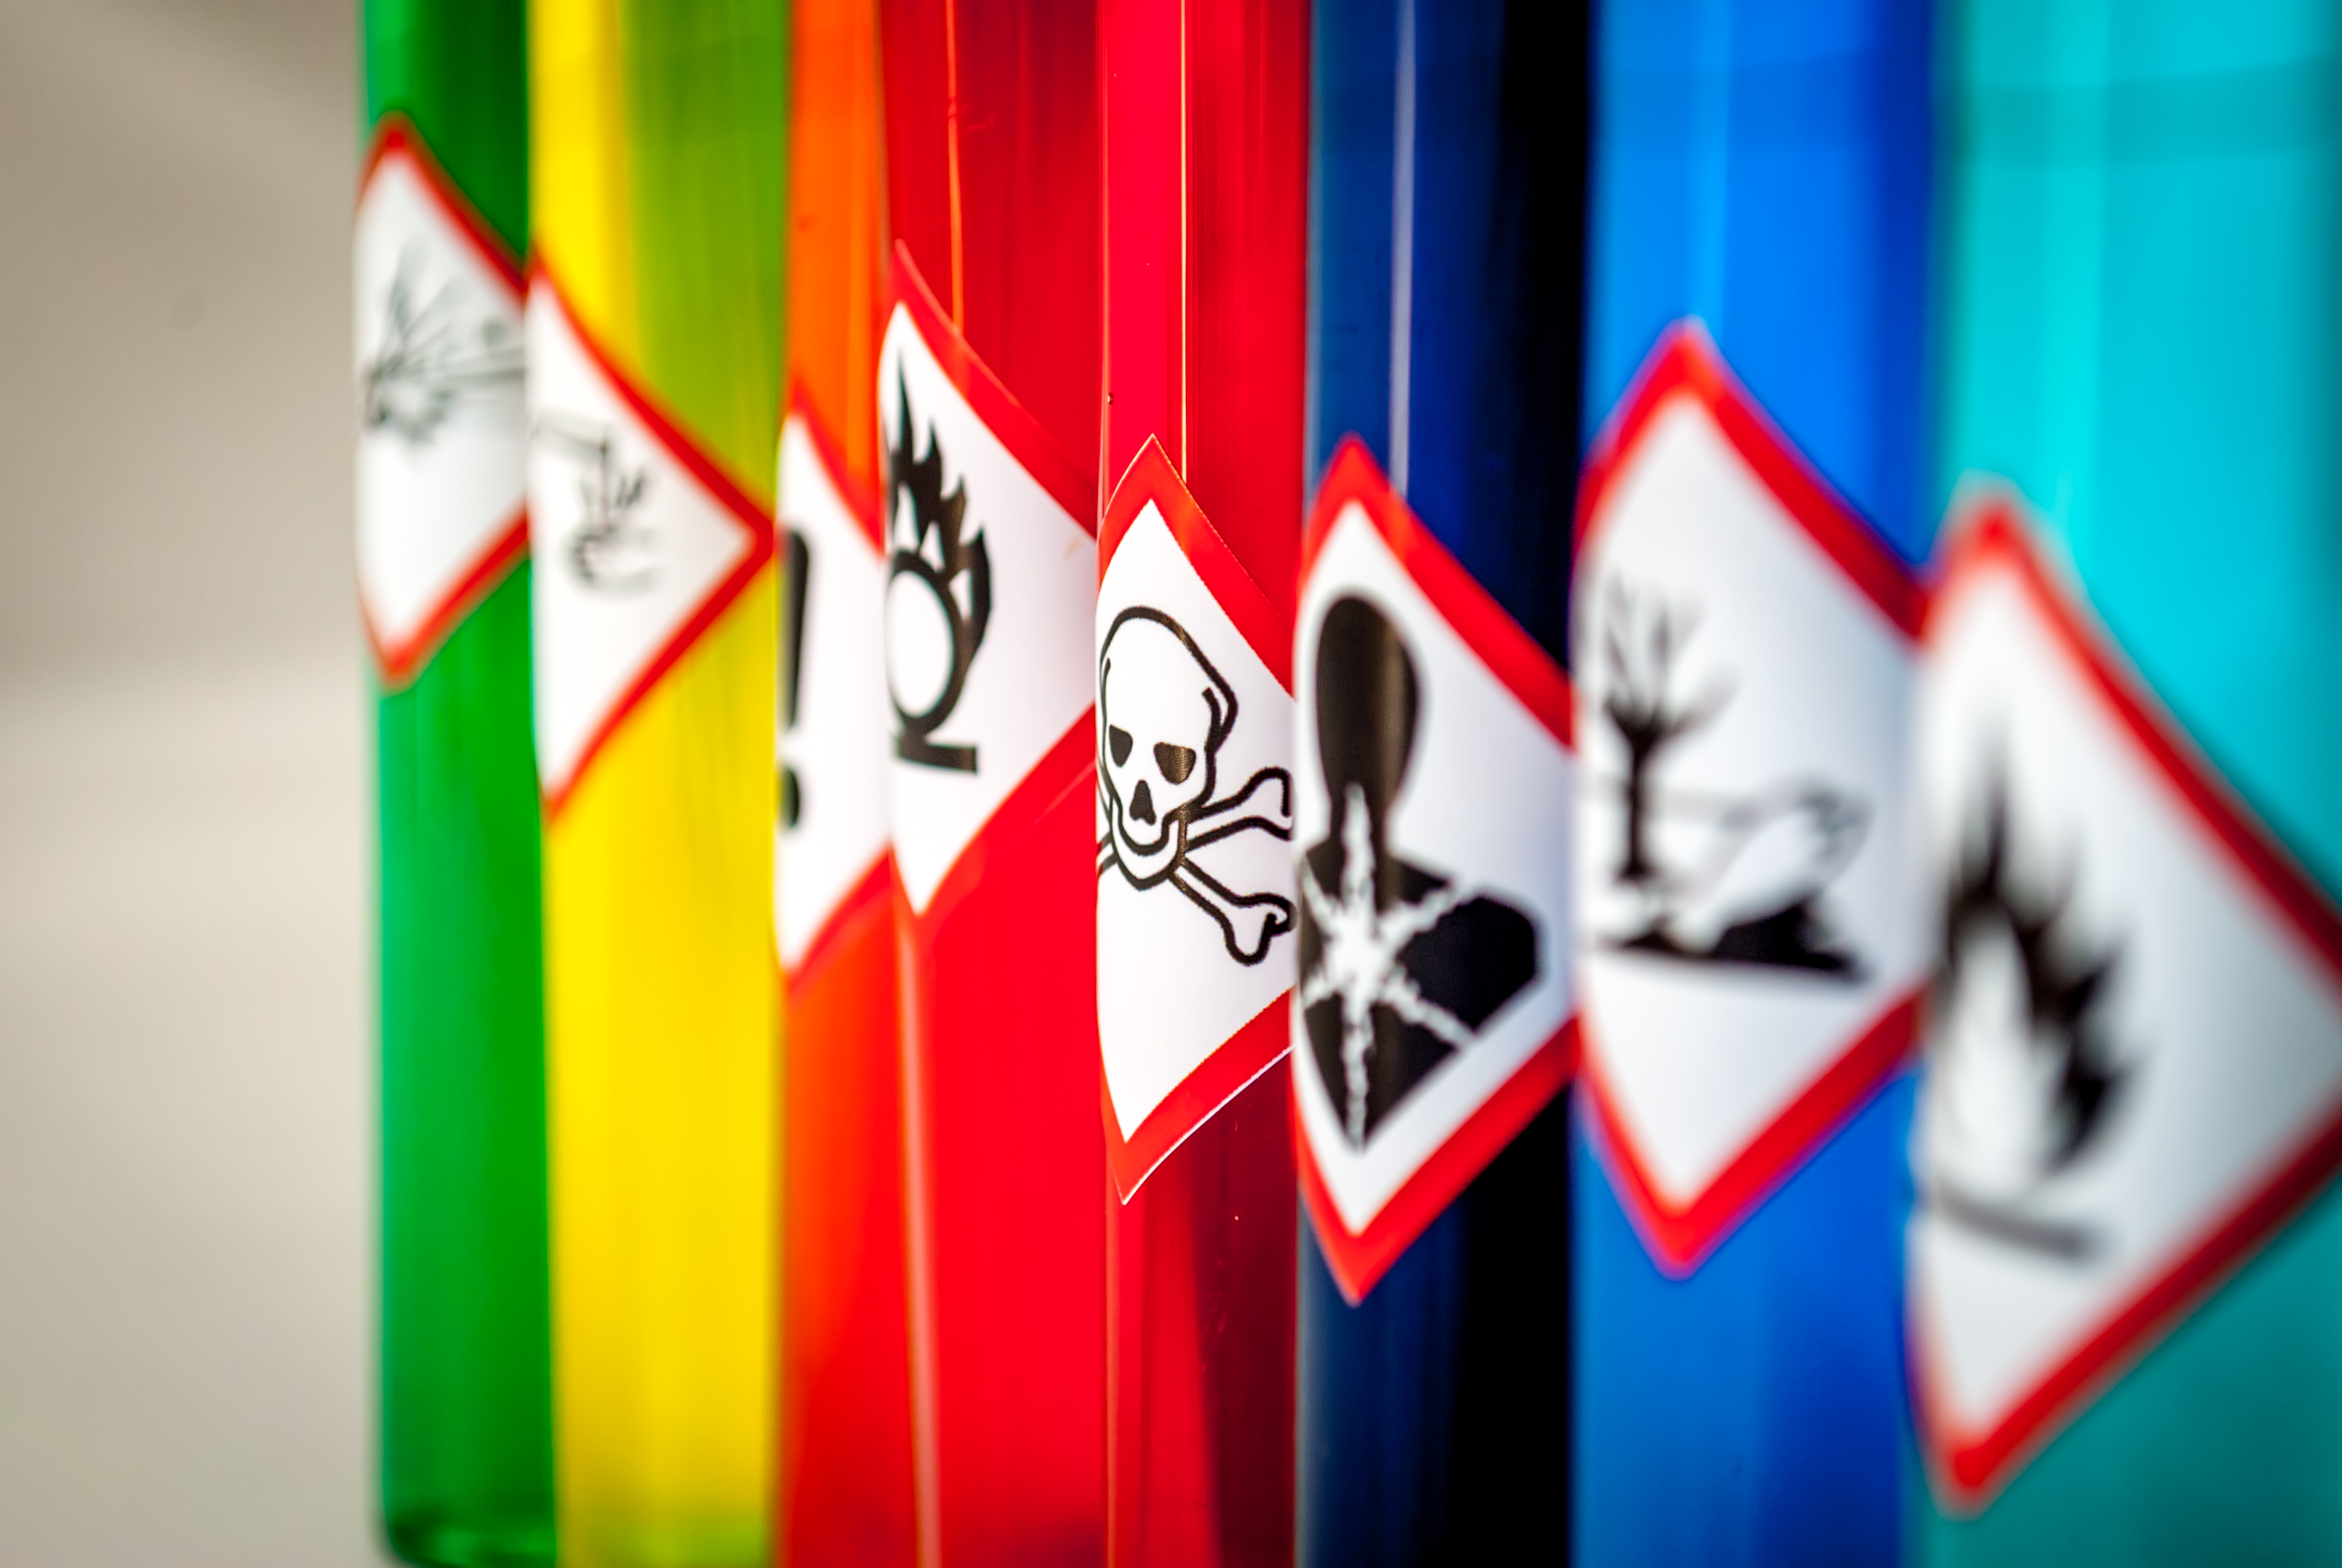 Chemical-hazard-pictograms-Toxic-focus